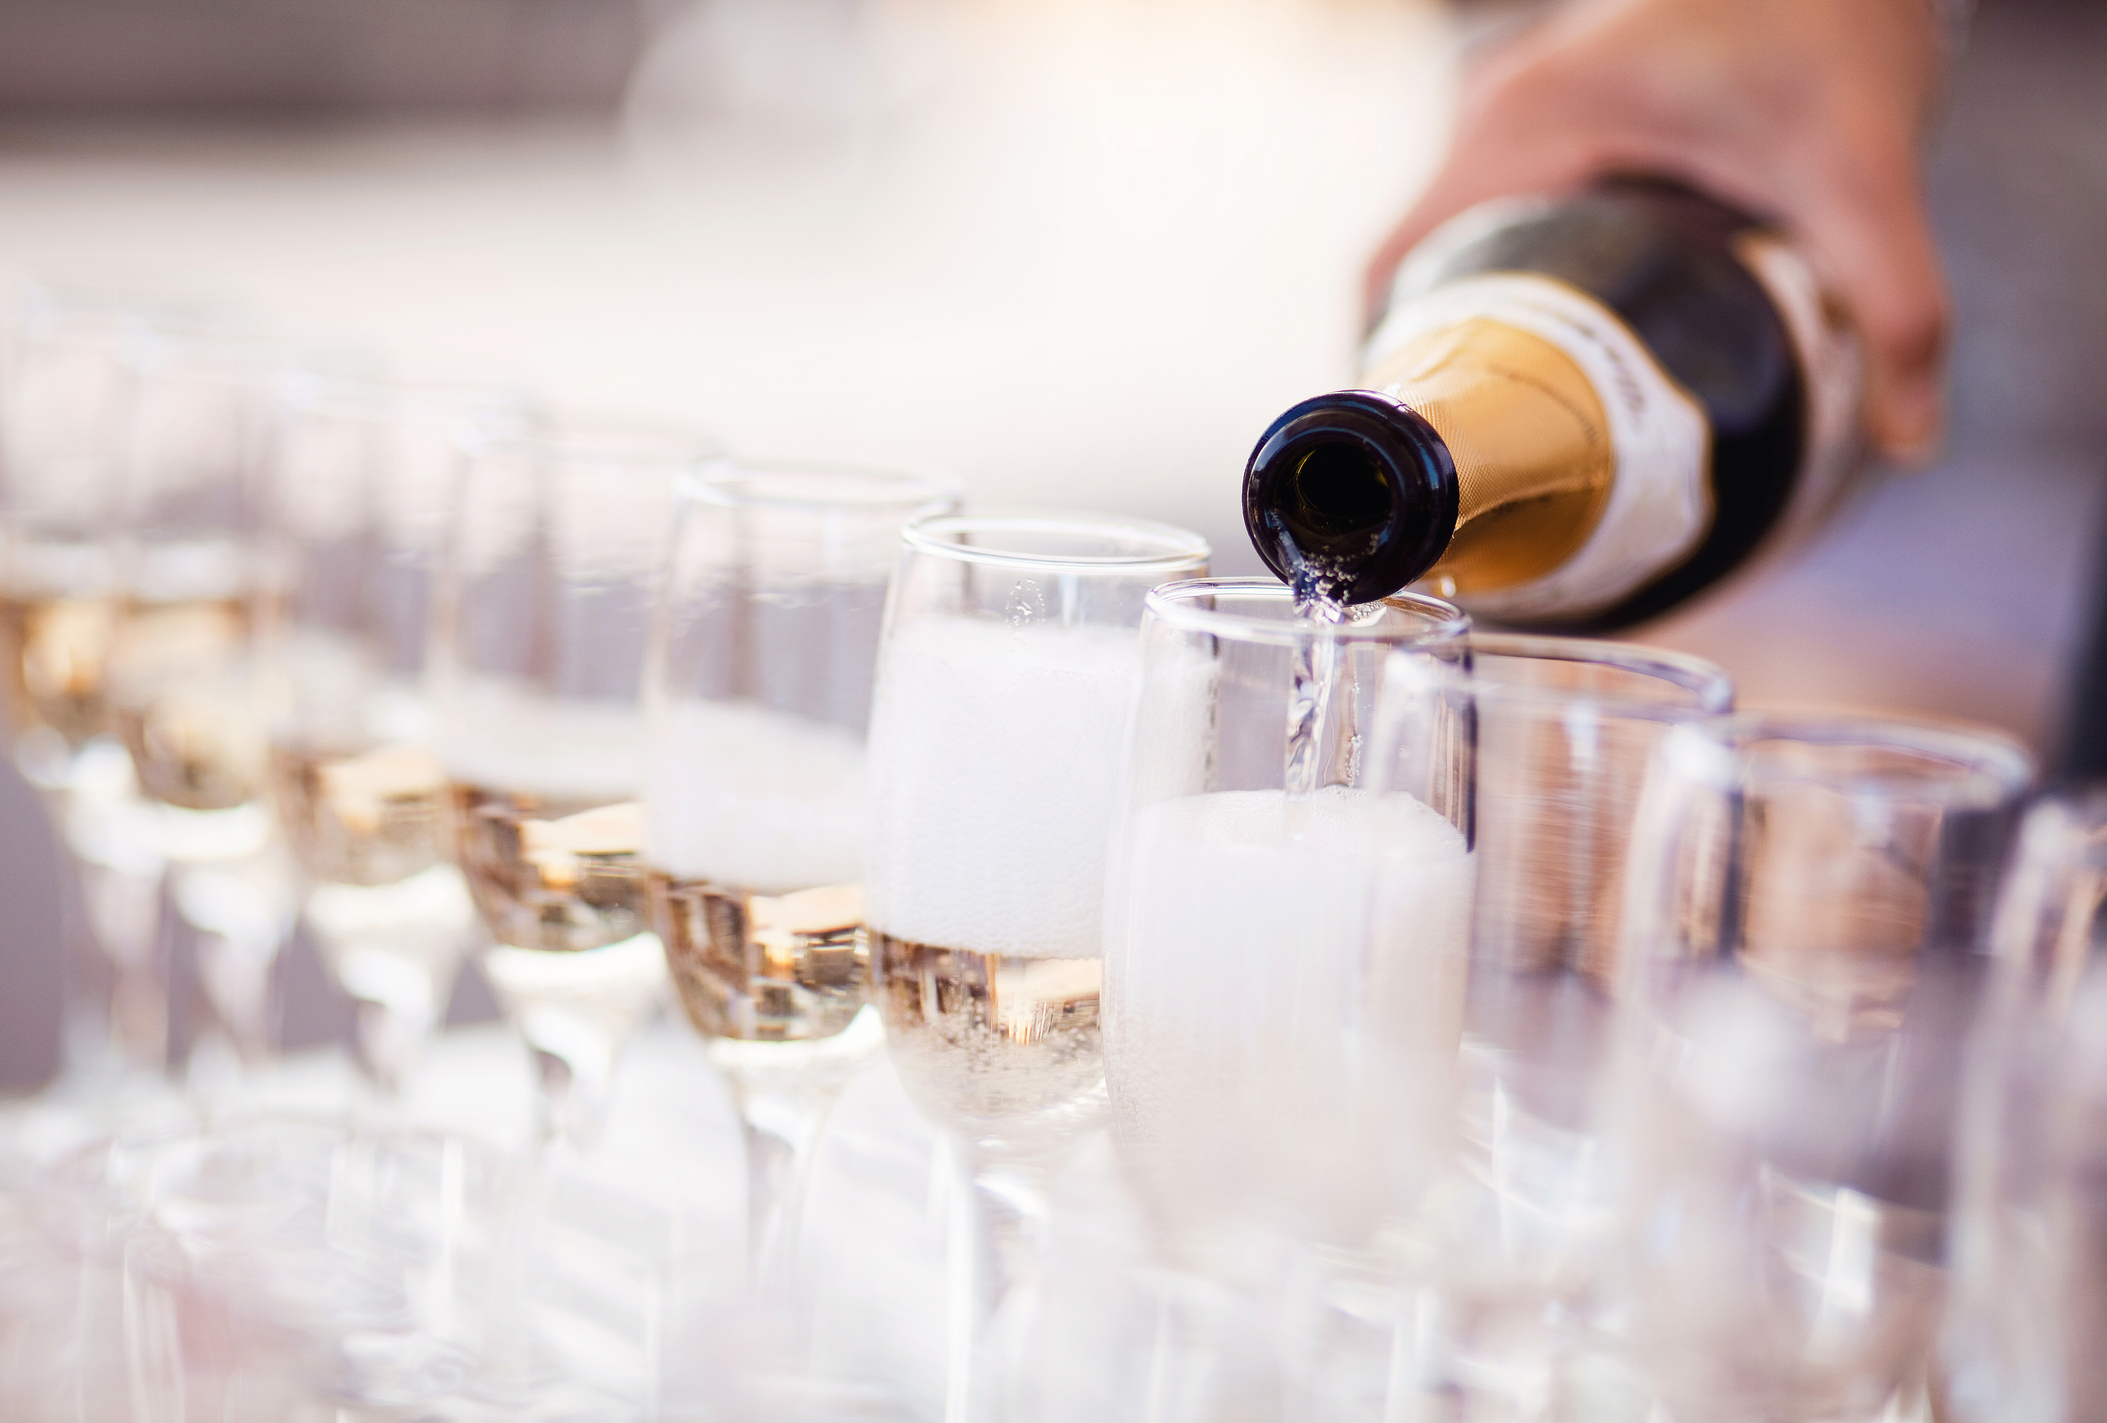 Corporate Events - There is no better team building tool than wine! Let us take care of your next team building or client appreciation event. We come to your office with everything you need to have a good time.